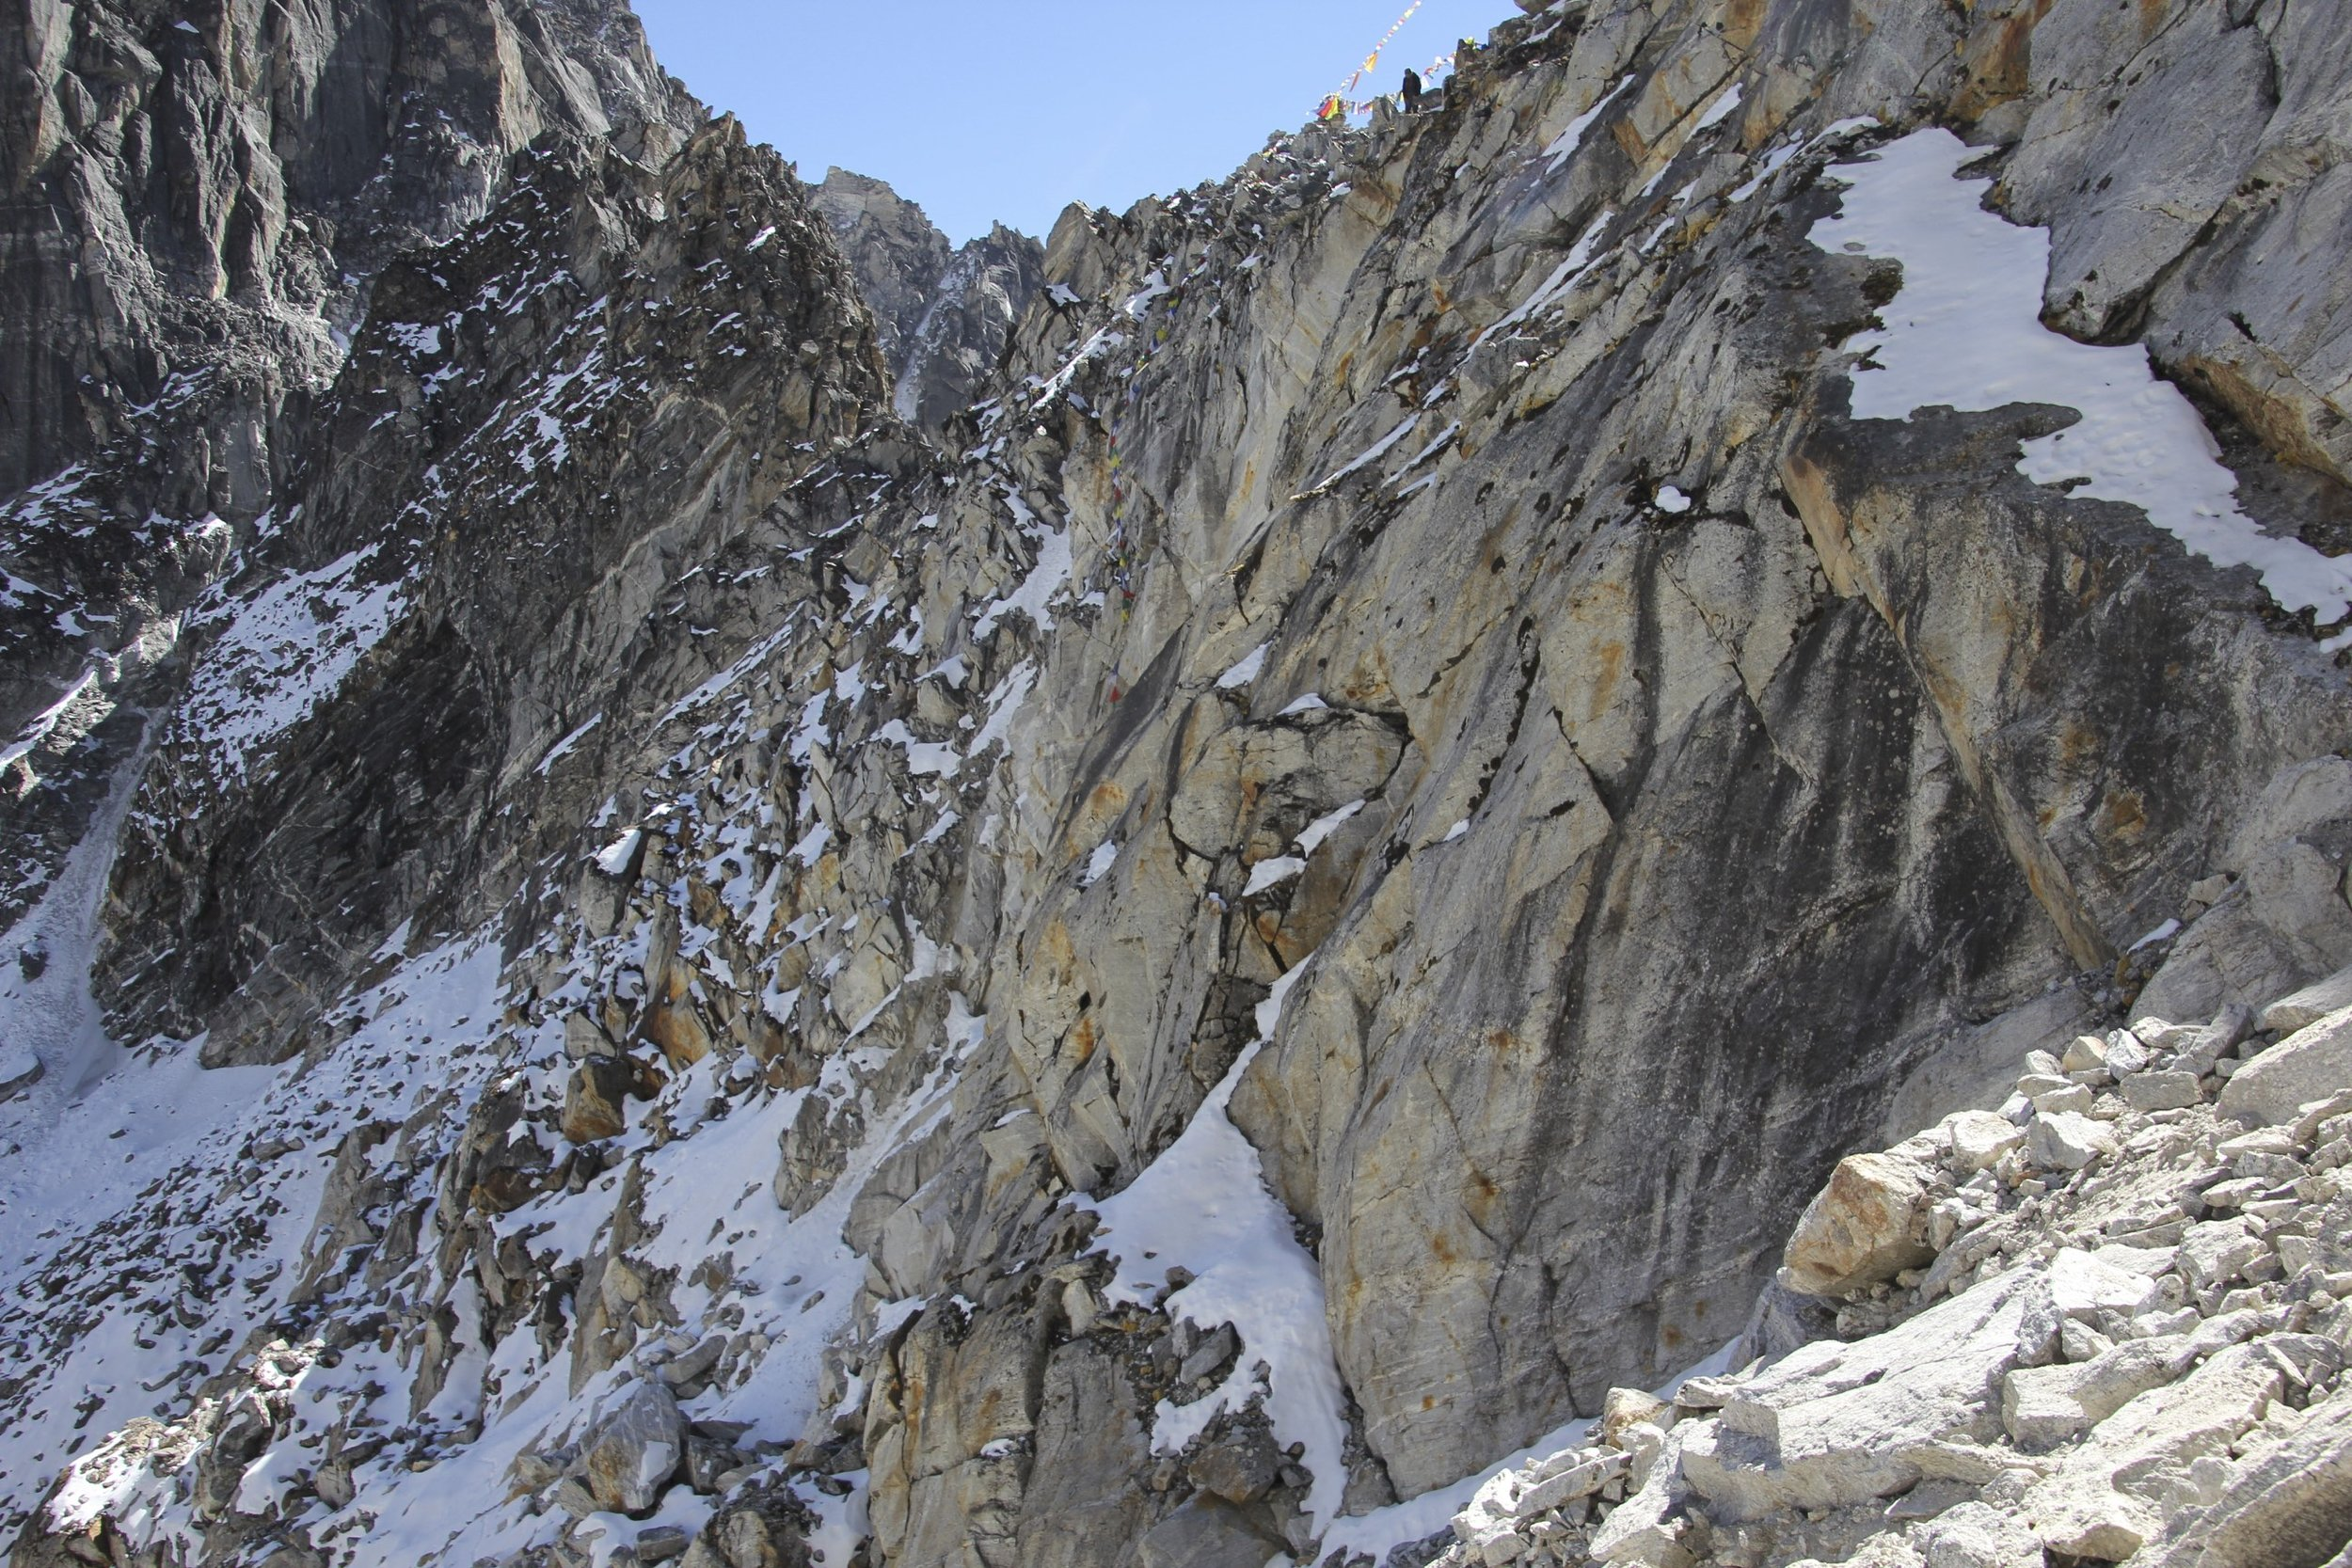 Ganjala Pass, the approach is via the snow covered shelf on the upper right. Chains have been installed for safety and a ladder for the porters.